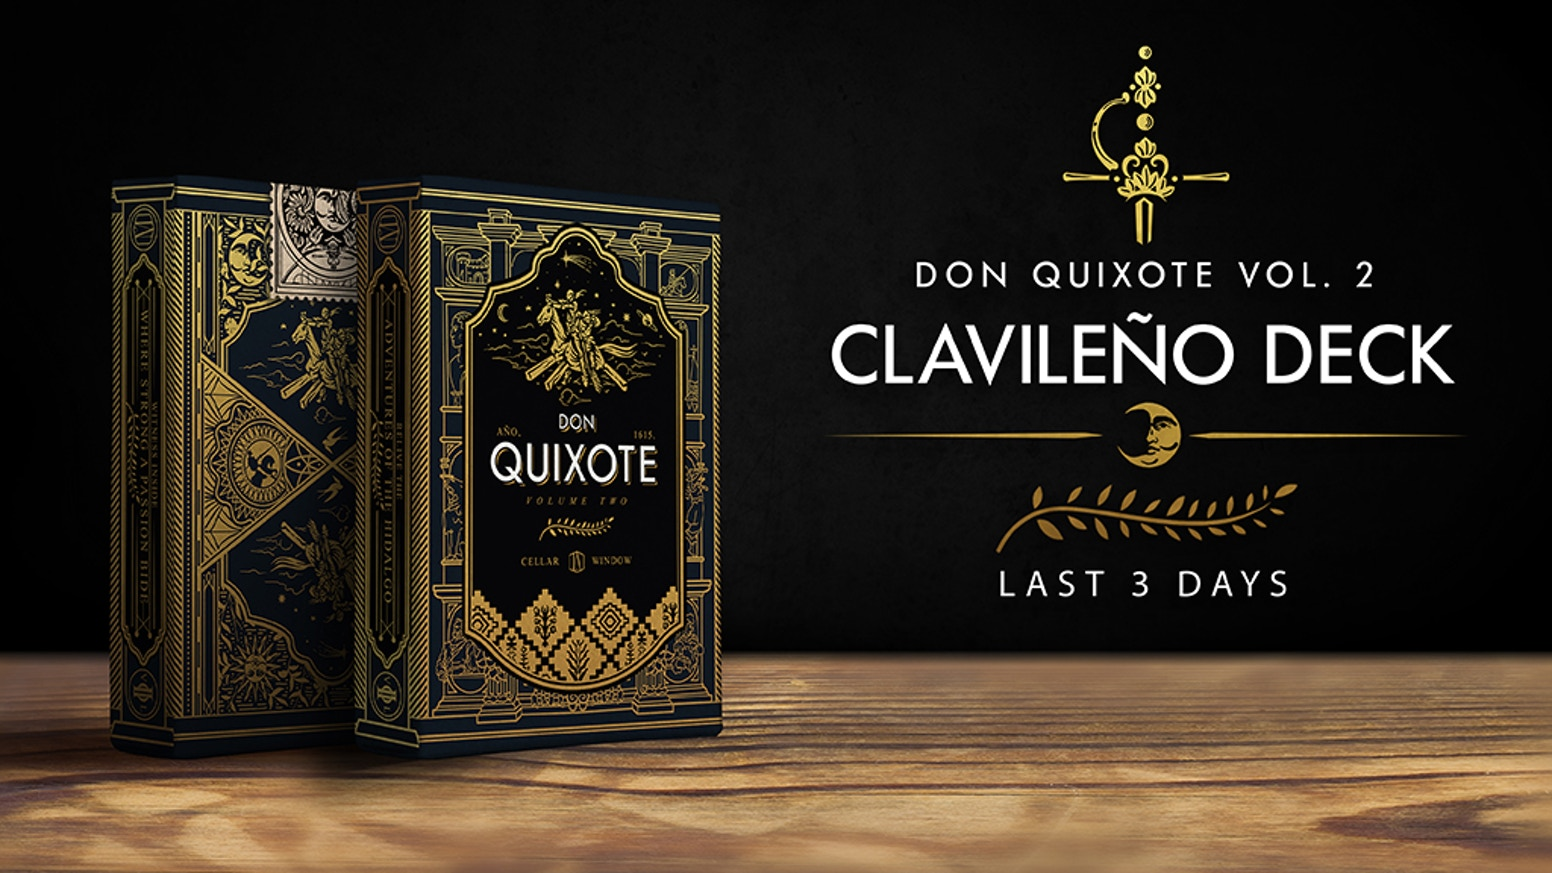 Playing cards inspired by the second novel of The Ingenious Gentleman Don Quixote of La Mancha.